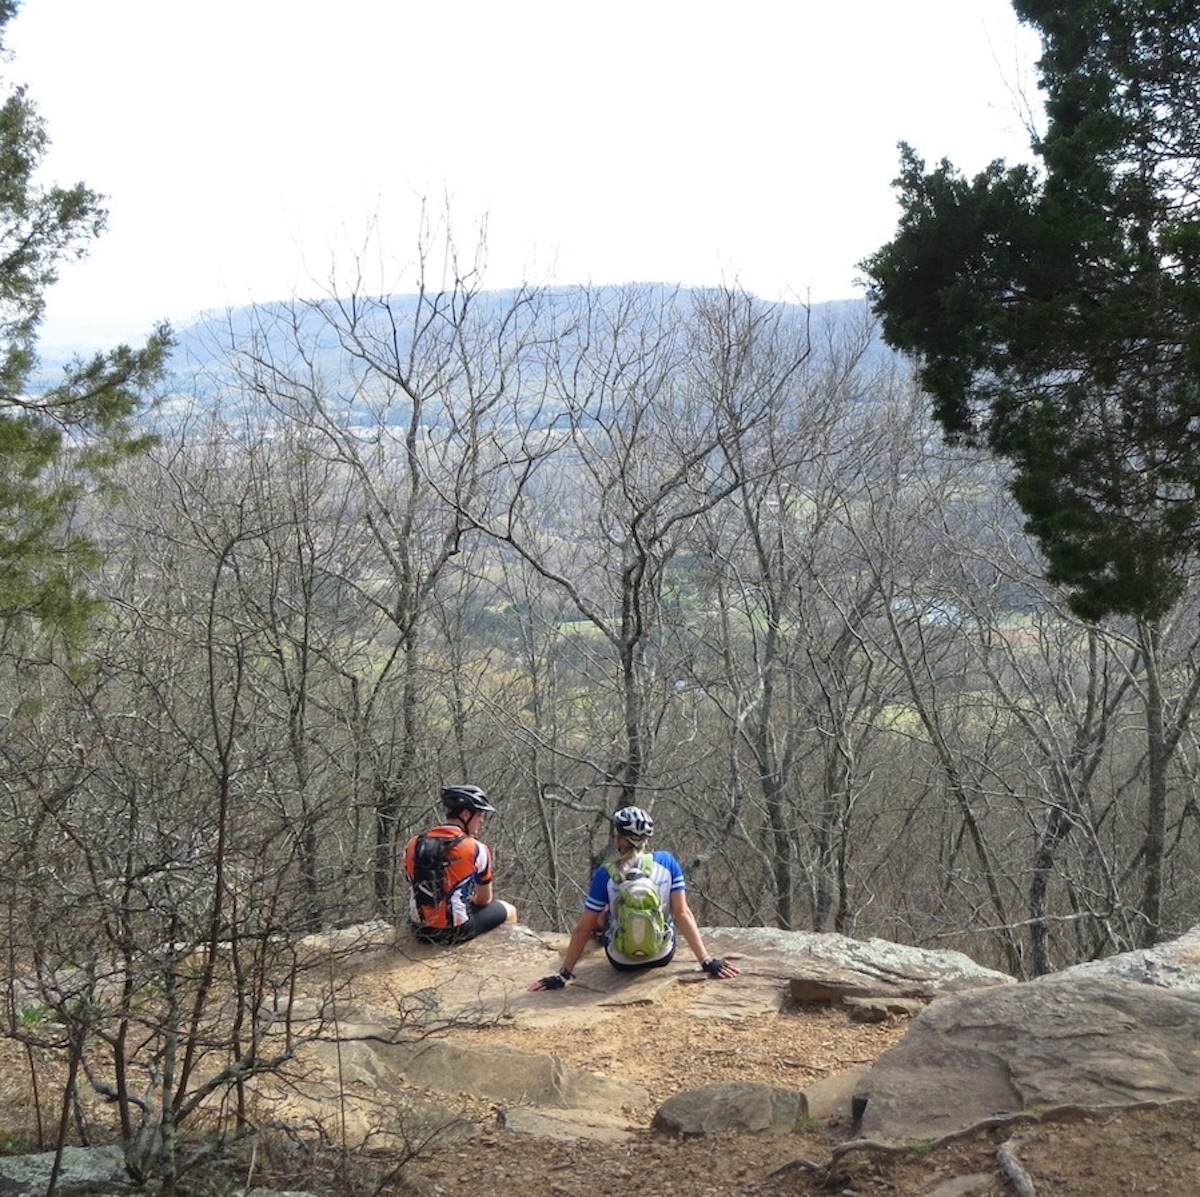 The view from O'Shaughnessy Point, Monte Sano State Park.